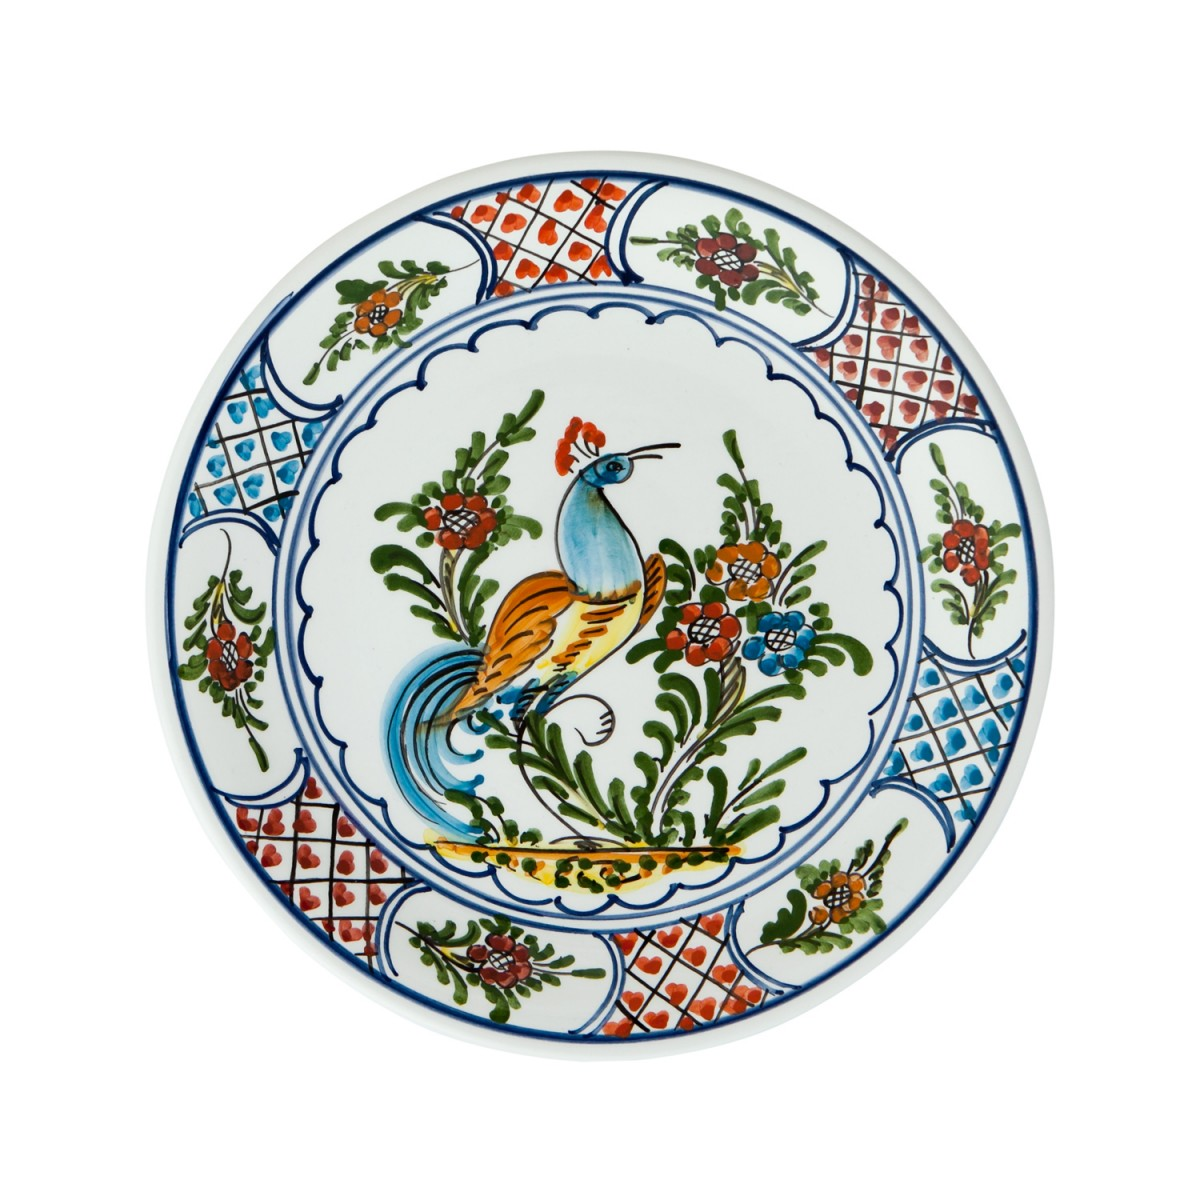 Hand_painted-Ceramic-Dinner-Decorative-Plates-Peacock-Skyriana_Plates-1